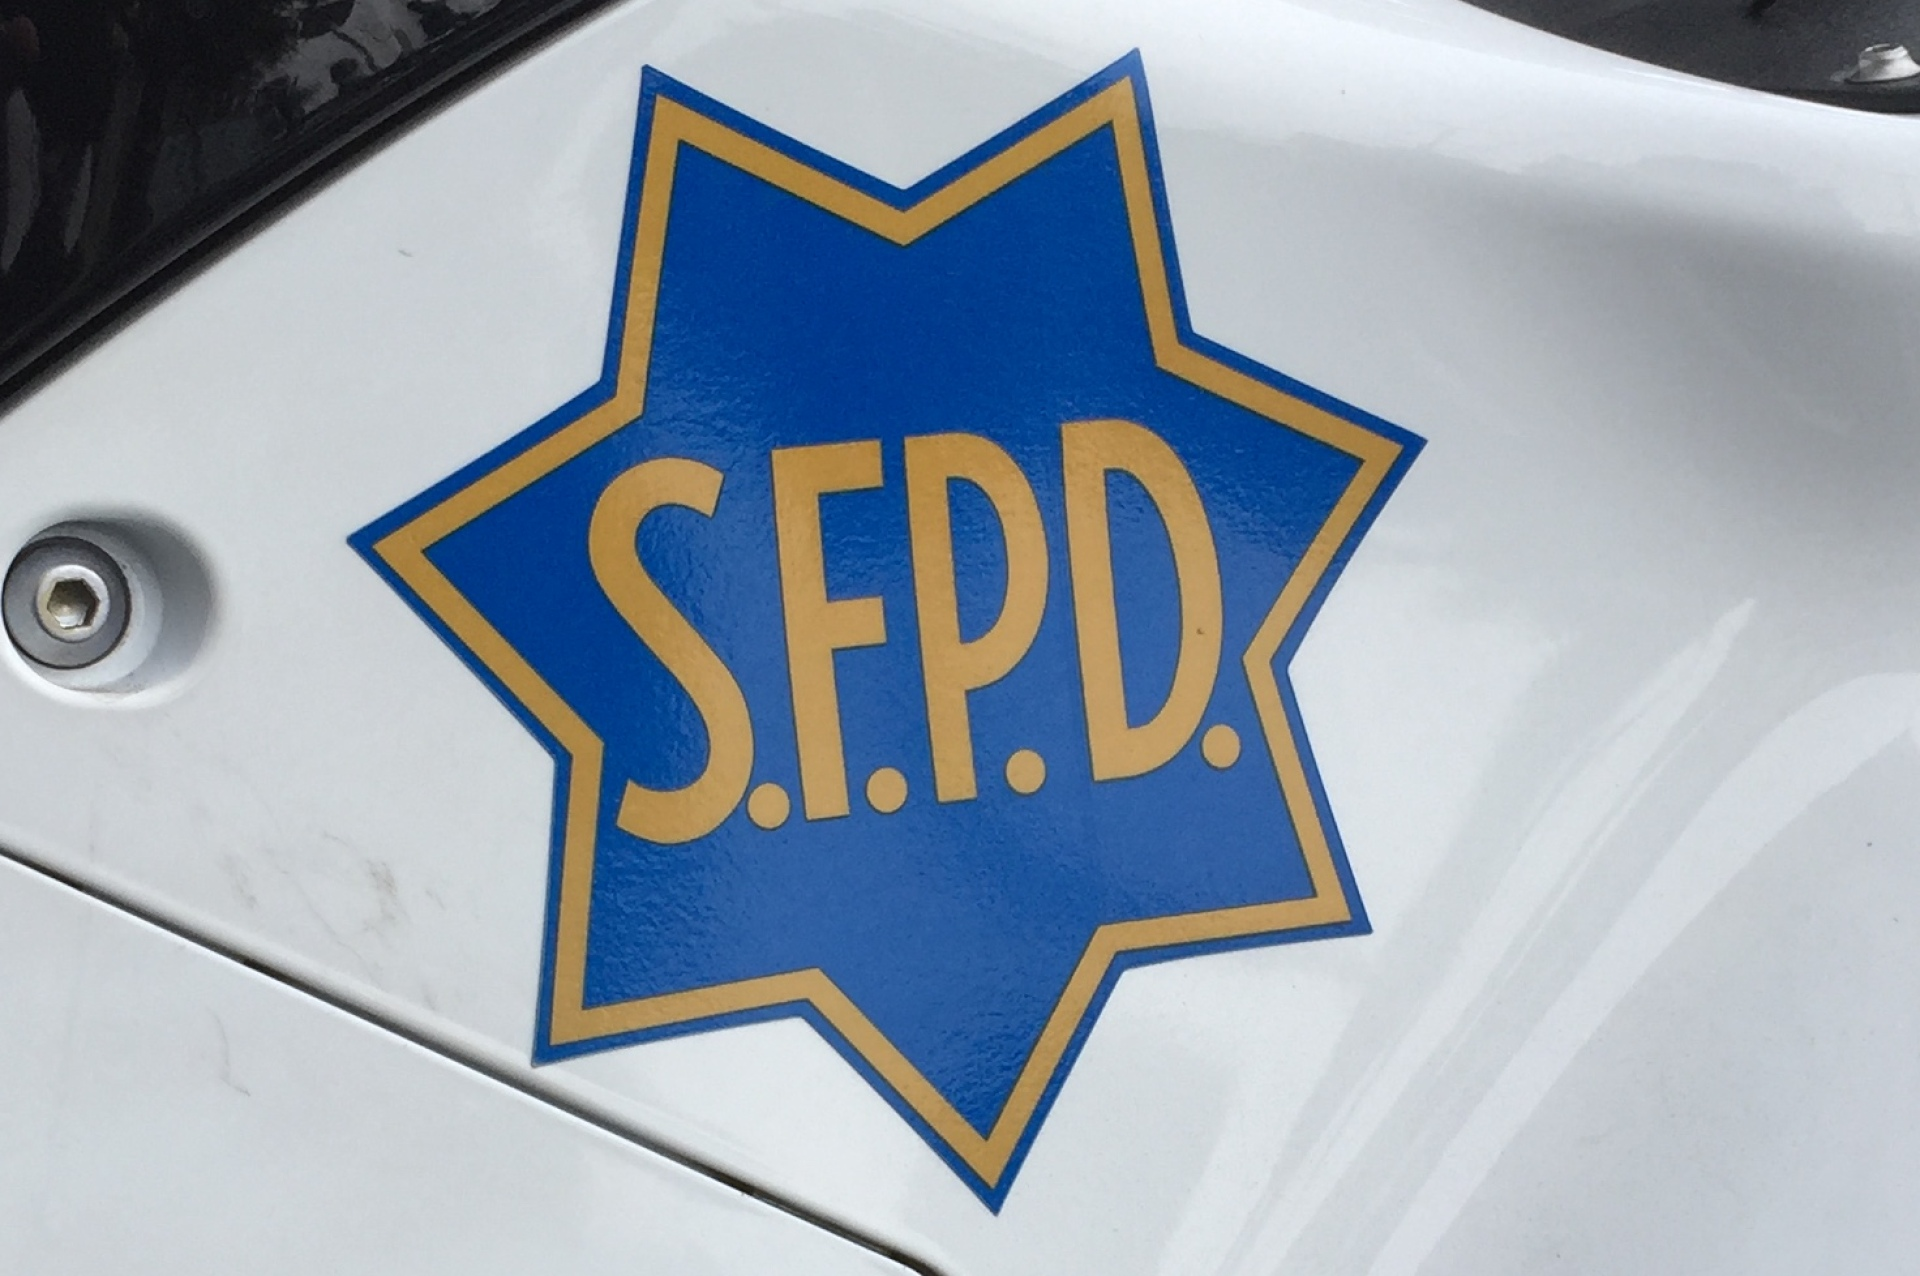 San Francisco District Attorney George Gascón says five more SFPD officers sent racist and homophobic text messages that his office uncovered as part of a criminal investigation.